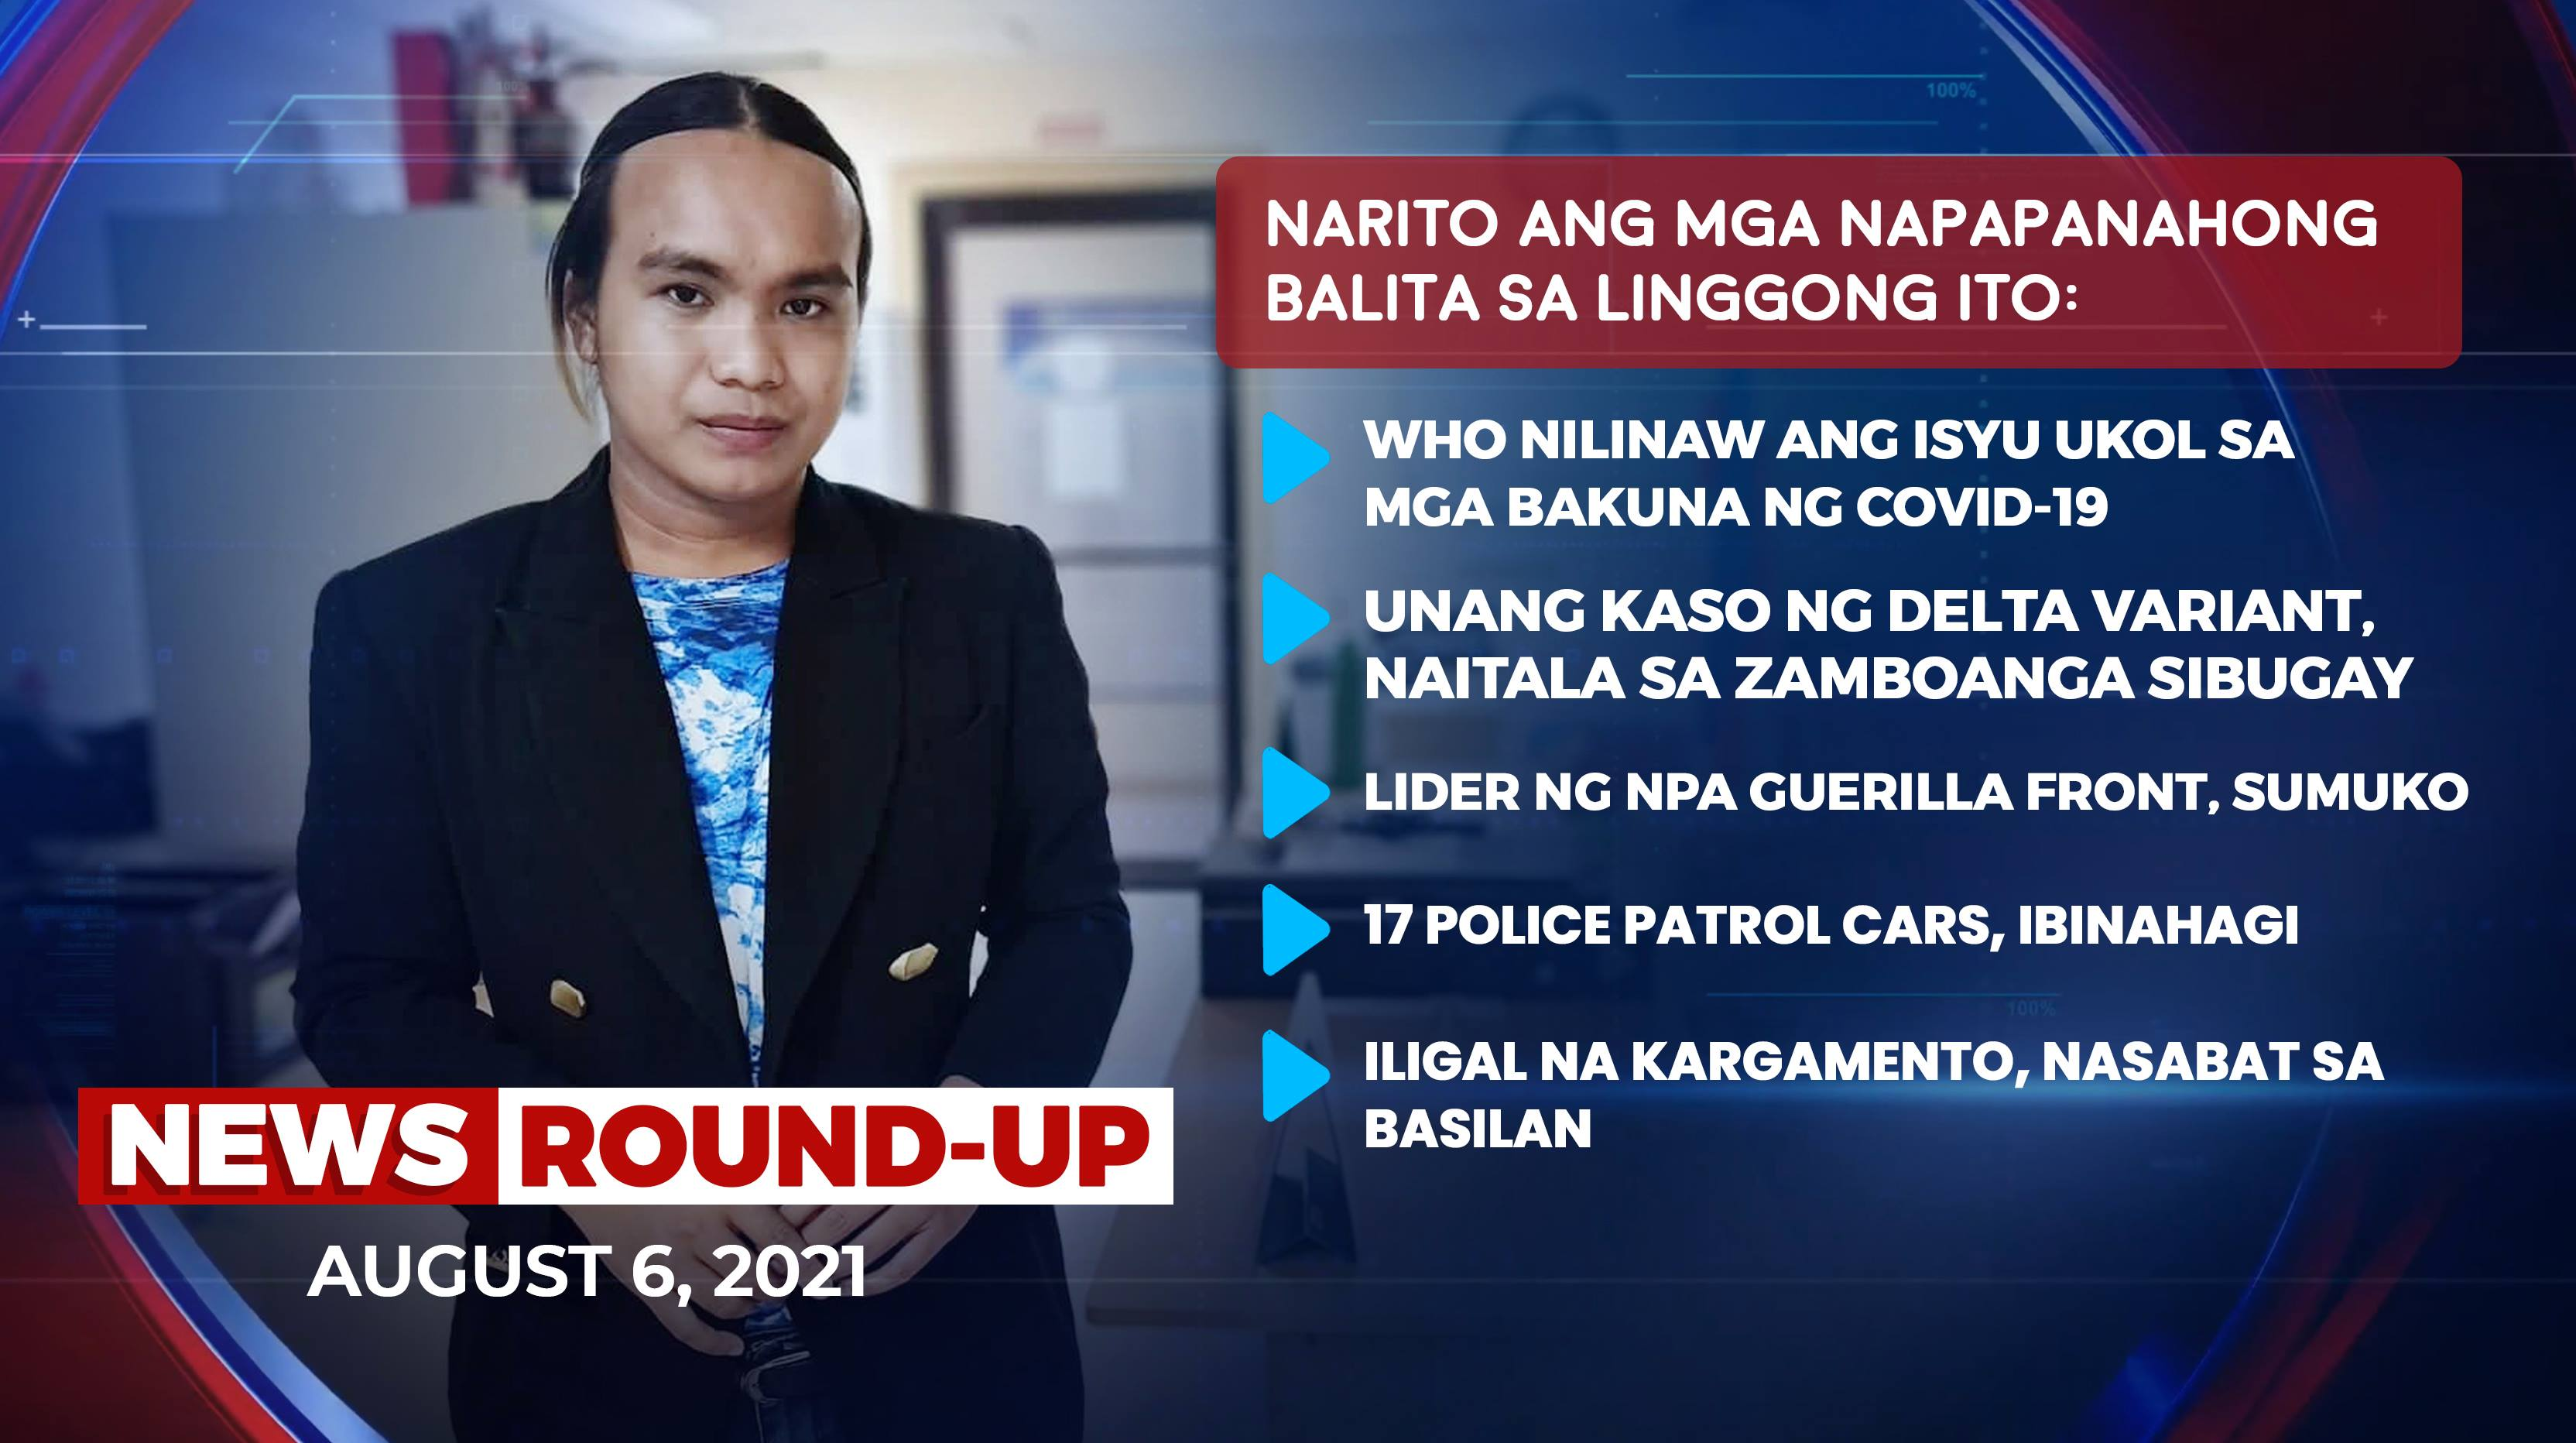 PIA-9 NEWS ROUND-UP | AUGUST 6, 2021